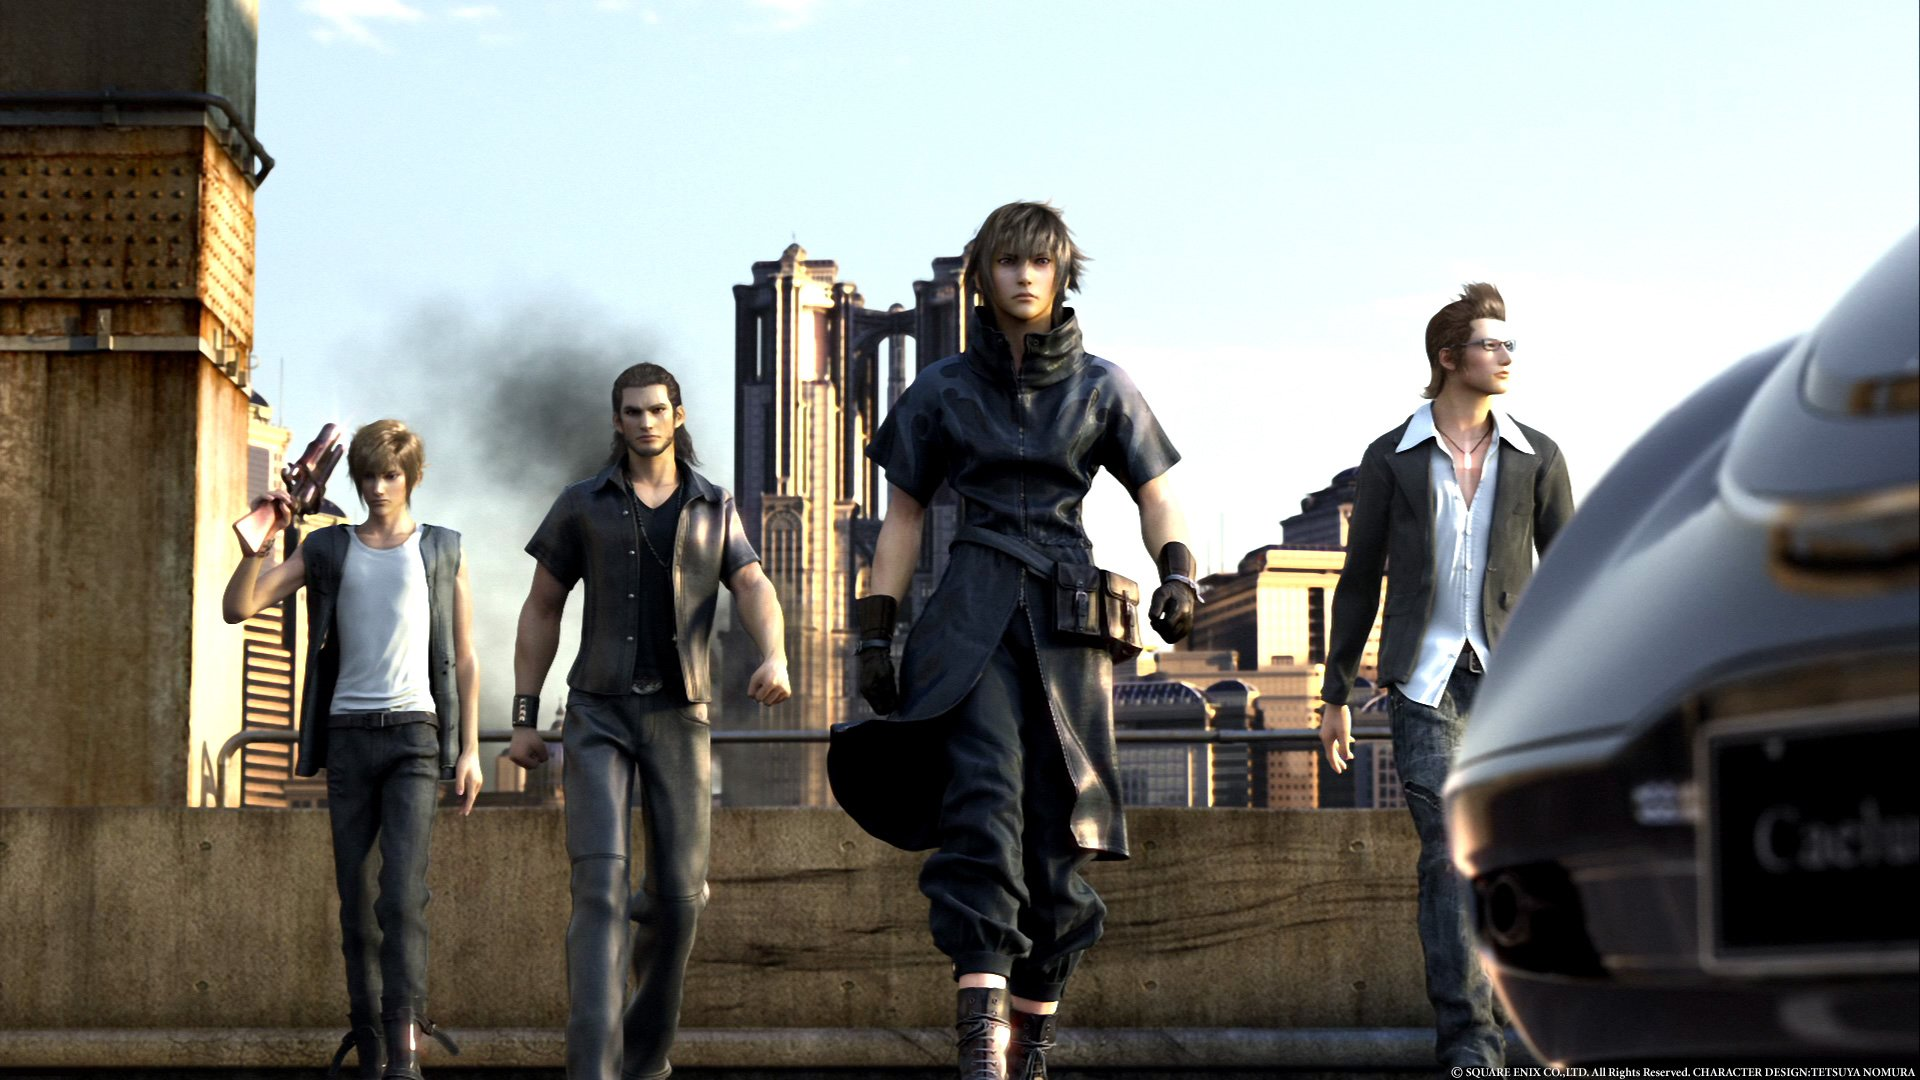 Check out the latest Final Fantasy XV trailer